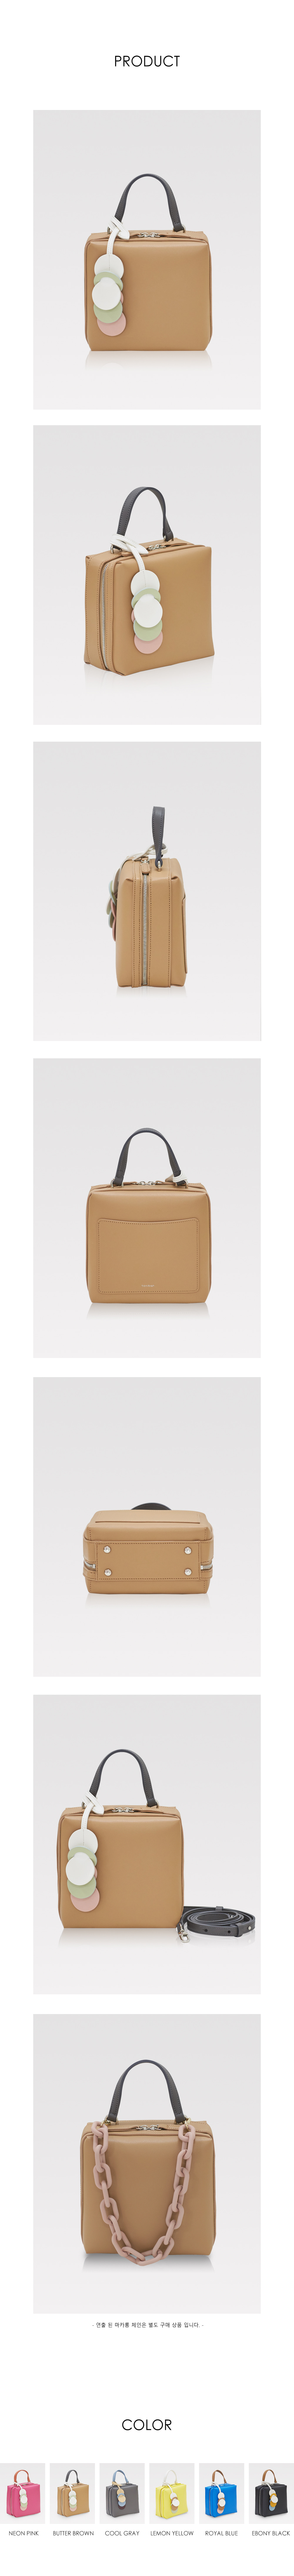 보니블라(BONIBLAH) M.CARON BAG (PEANUT BROWN)